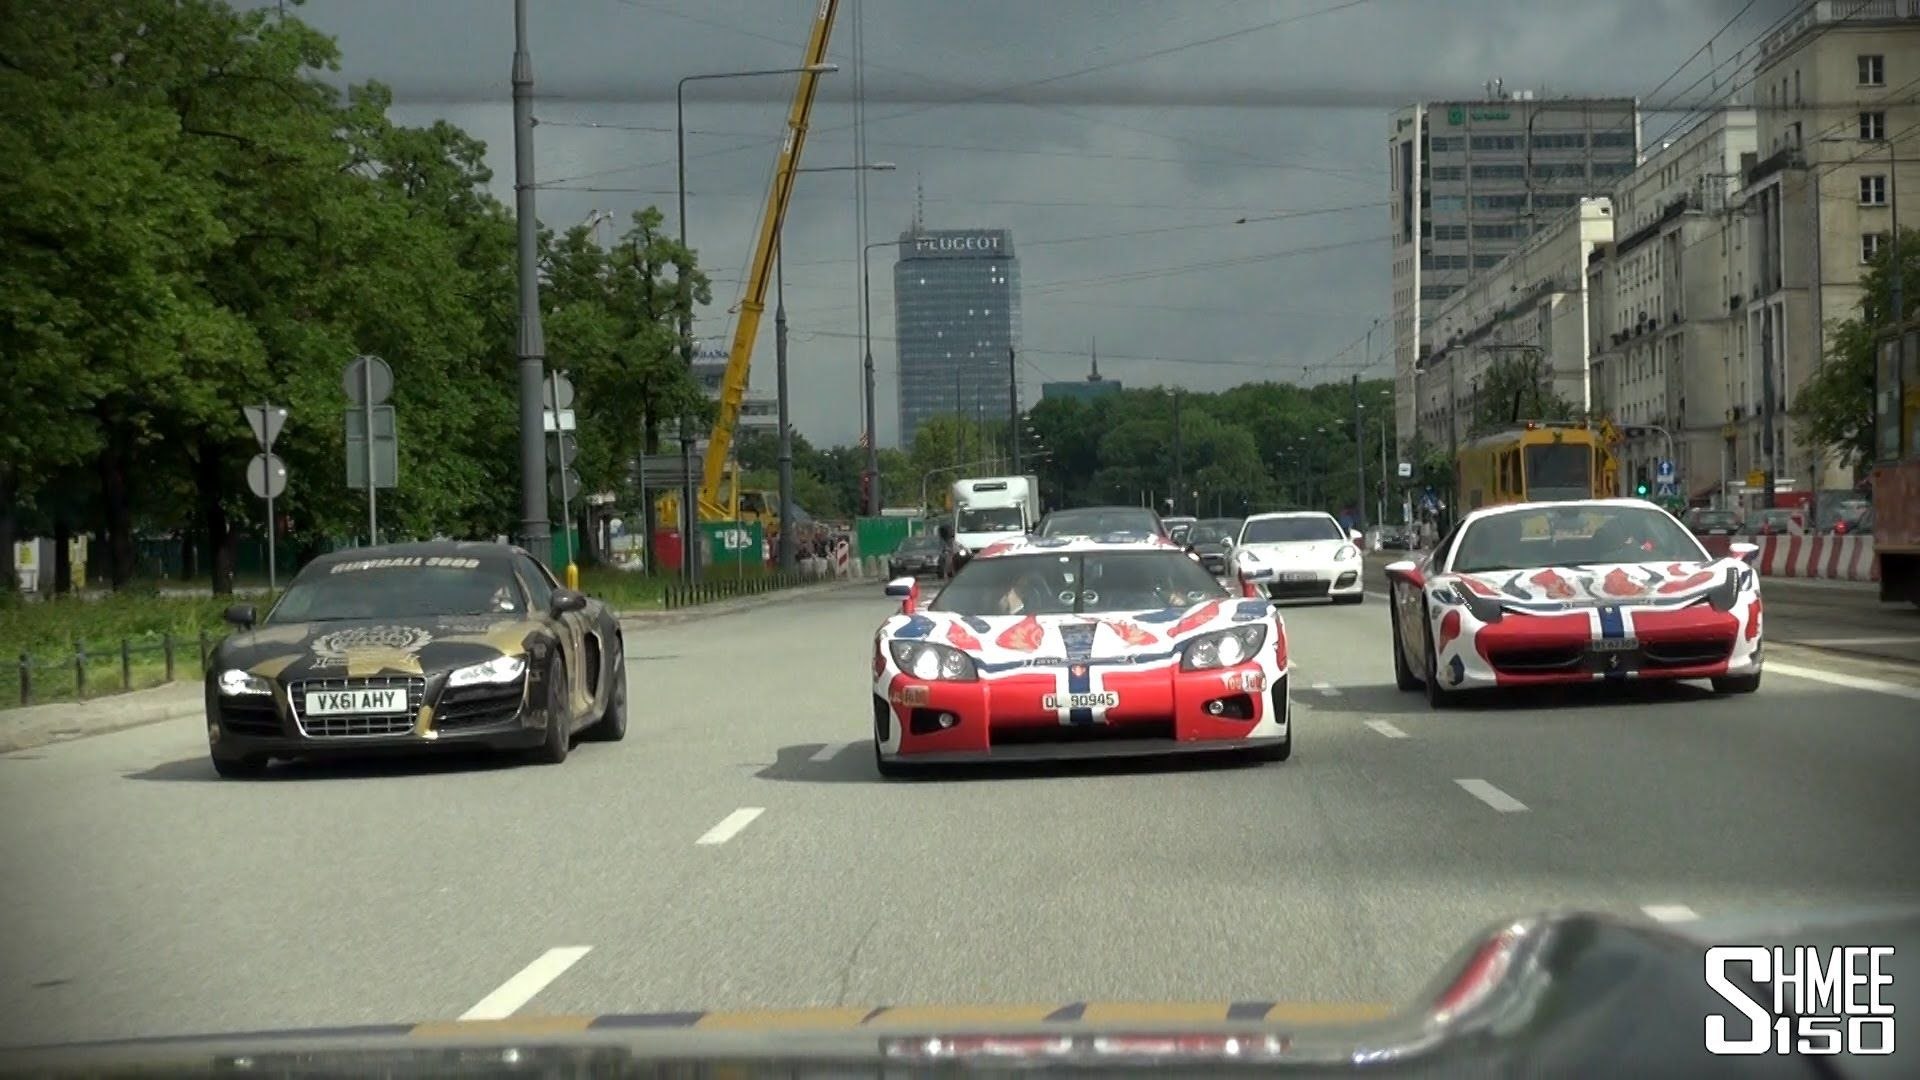 [Shmee Special] Gumball 3000 2013 Movie